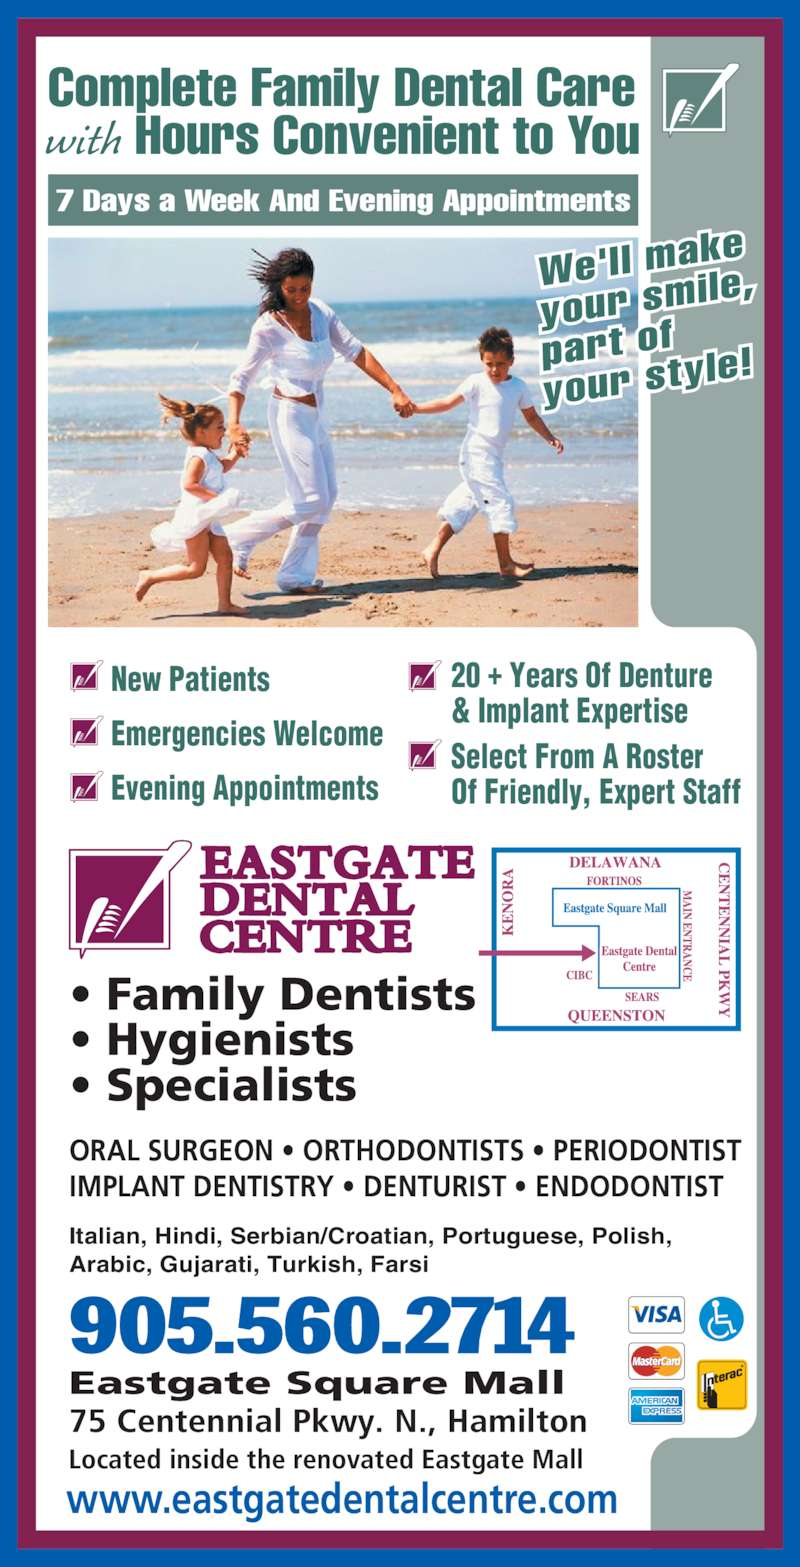 Eastgate Dental Centre (9055602714) - Display Ad - Complete Family Dental Care with Hours Convenient to You www.eastgatedentalcentre.com 75 Centennial Pkwy. N., Hamilton Located inside the renovated Eastgate Mall Eastgate Square Mall • Family Dentists • Hygienists • Specialists ORAL SURGEON • ORTHODONTISTS • PERIODONTIST IMPLANT DENTISTRY • DENTURIST • ENDODONTIST 7 Days a Week And Evening Appointments 905.560.2714 20 + Years Of Denture & Implant Expertise Select From A Roster Of Friendly, Expert Staff New Patients Emergencies Welcome Evening Appointments Italian, Hindi, Serbian/Croatian, Portuguese, Polish, Arabic, Gujarati, Turkish, Farsi We'll mak your smi le, part of your styl e!